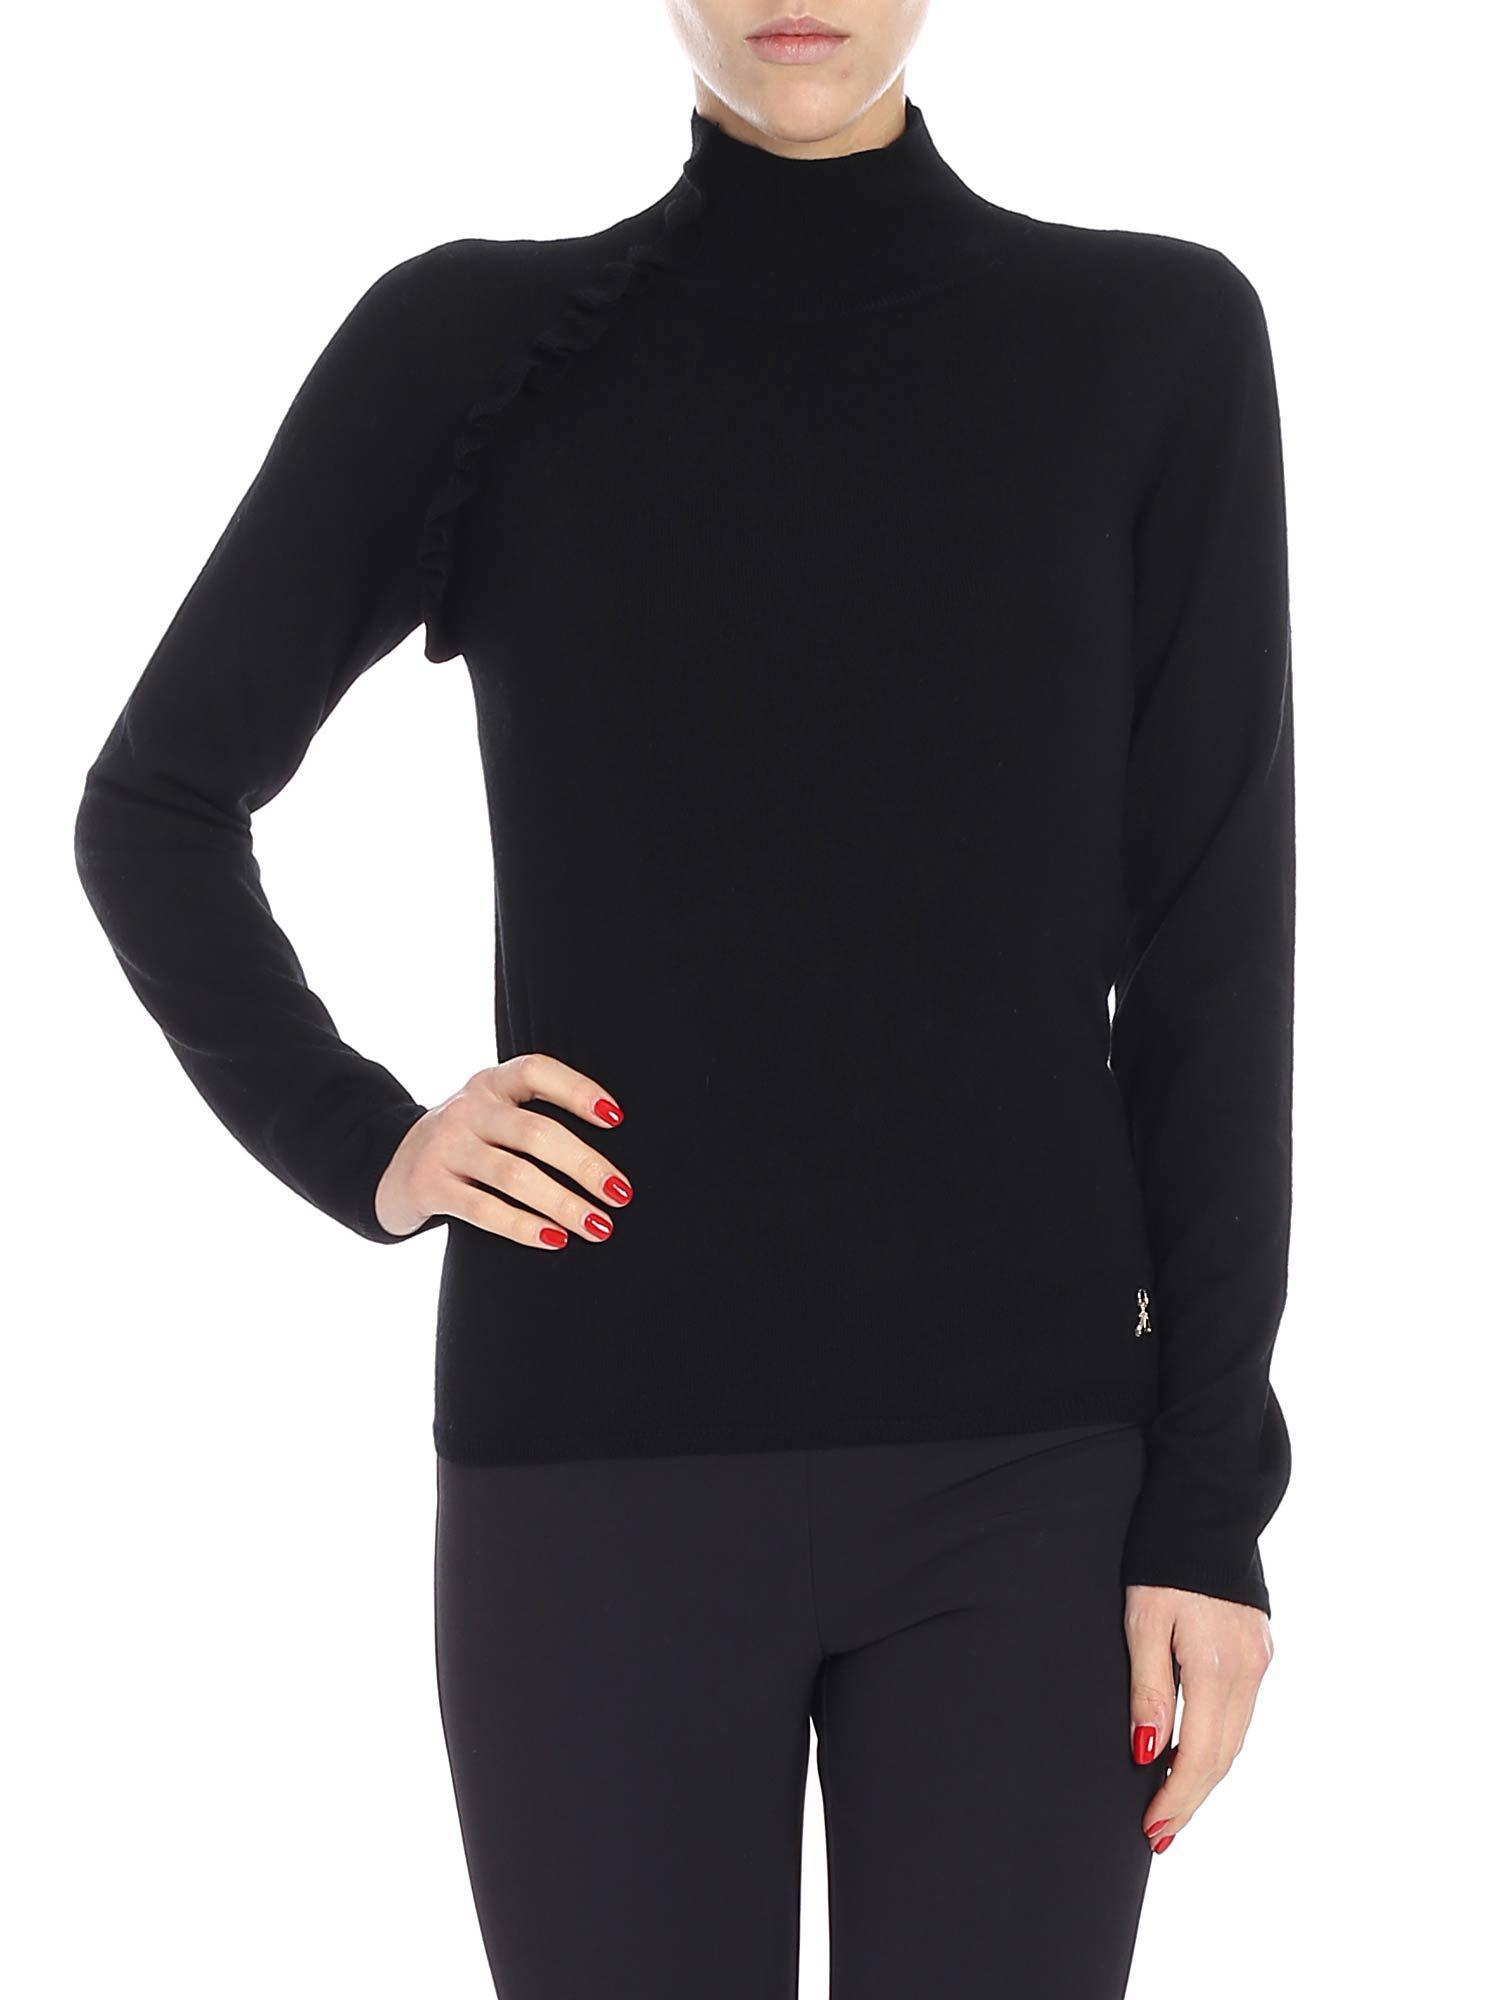 94e6dca948 Patrizia Pepe Black Turtleneck Sweater in Black - Lyst